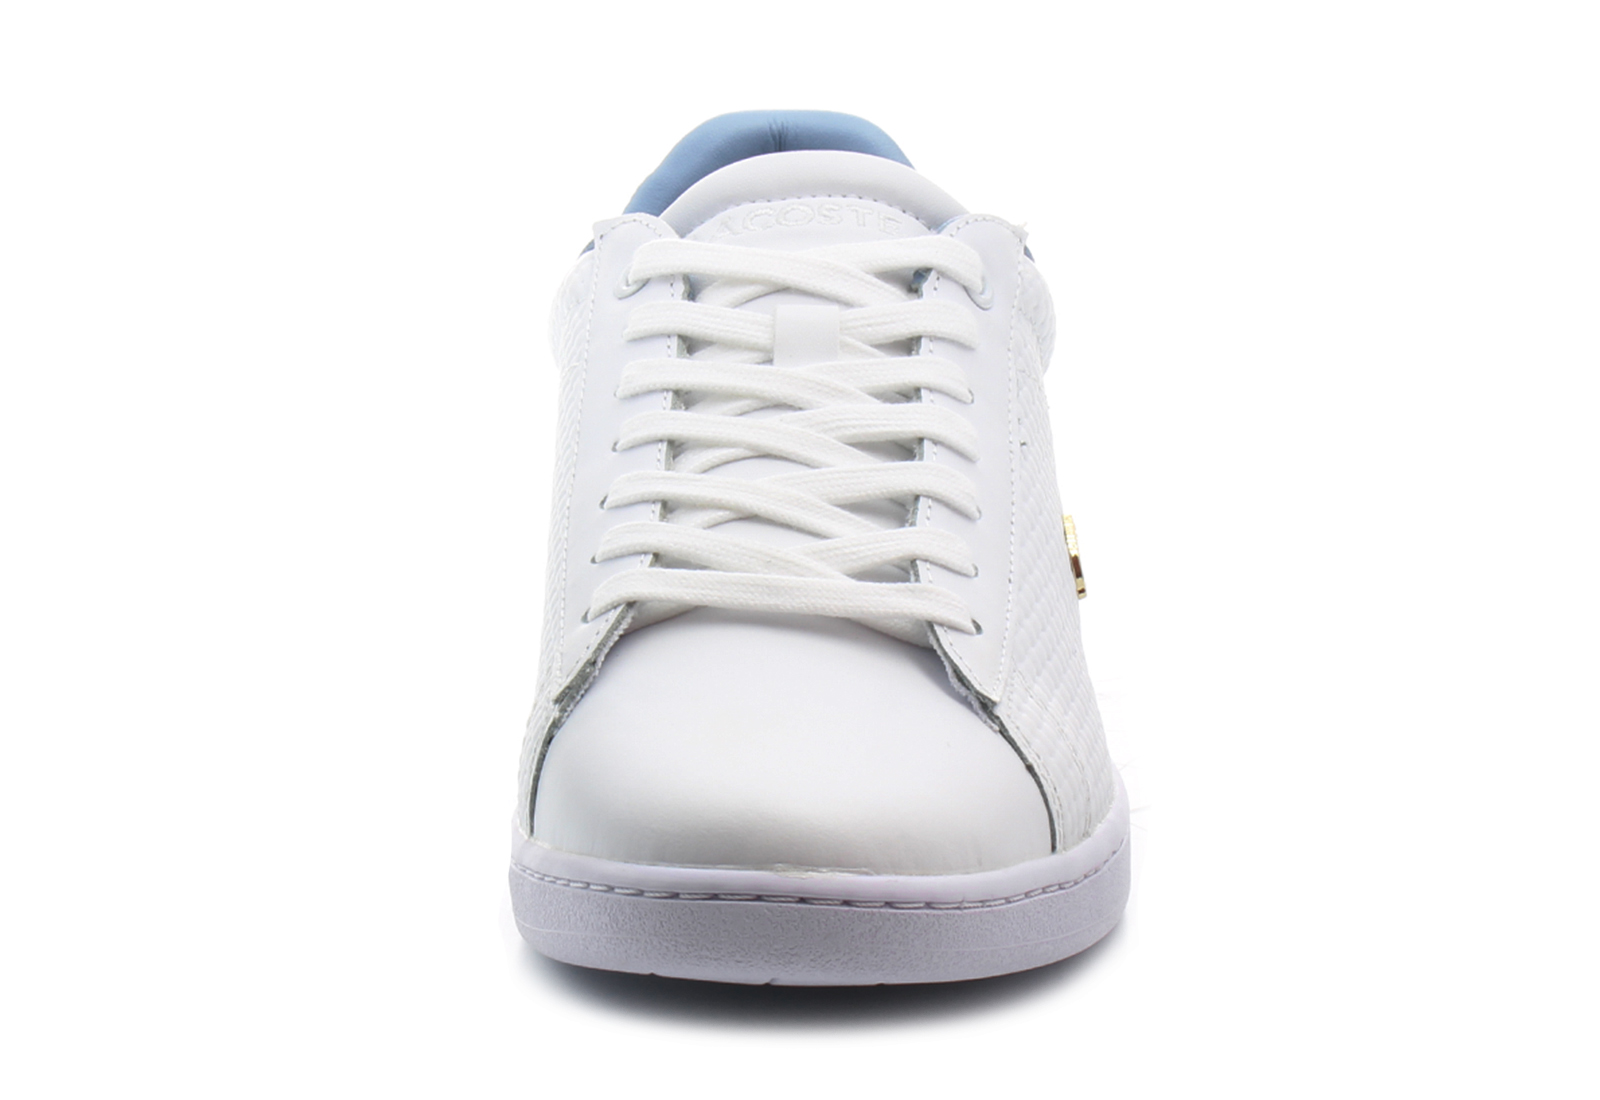 mens k swiss shoes size 10 5 convert to centimeters 5 6 150